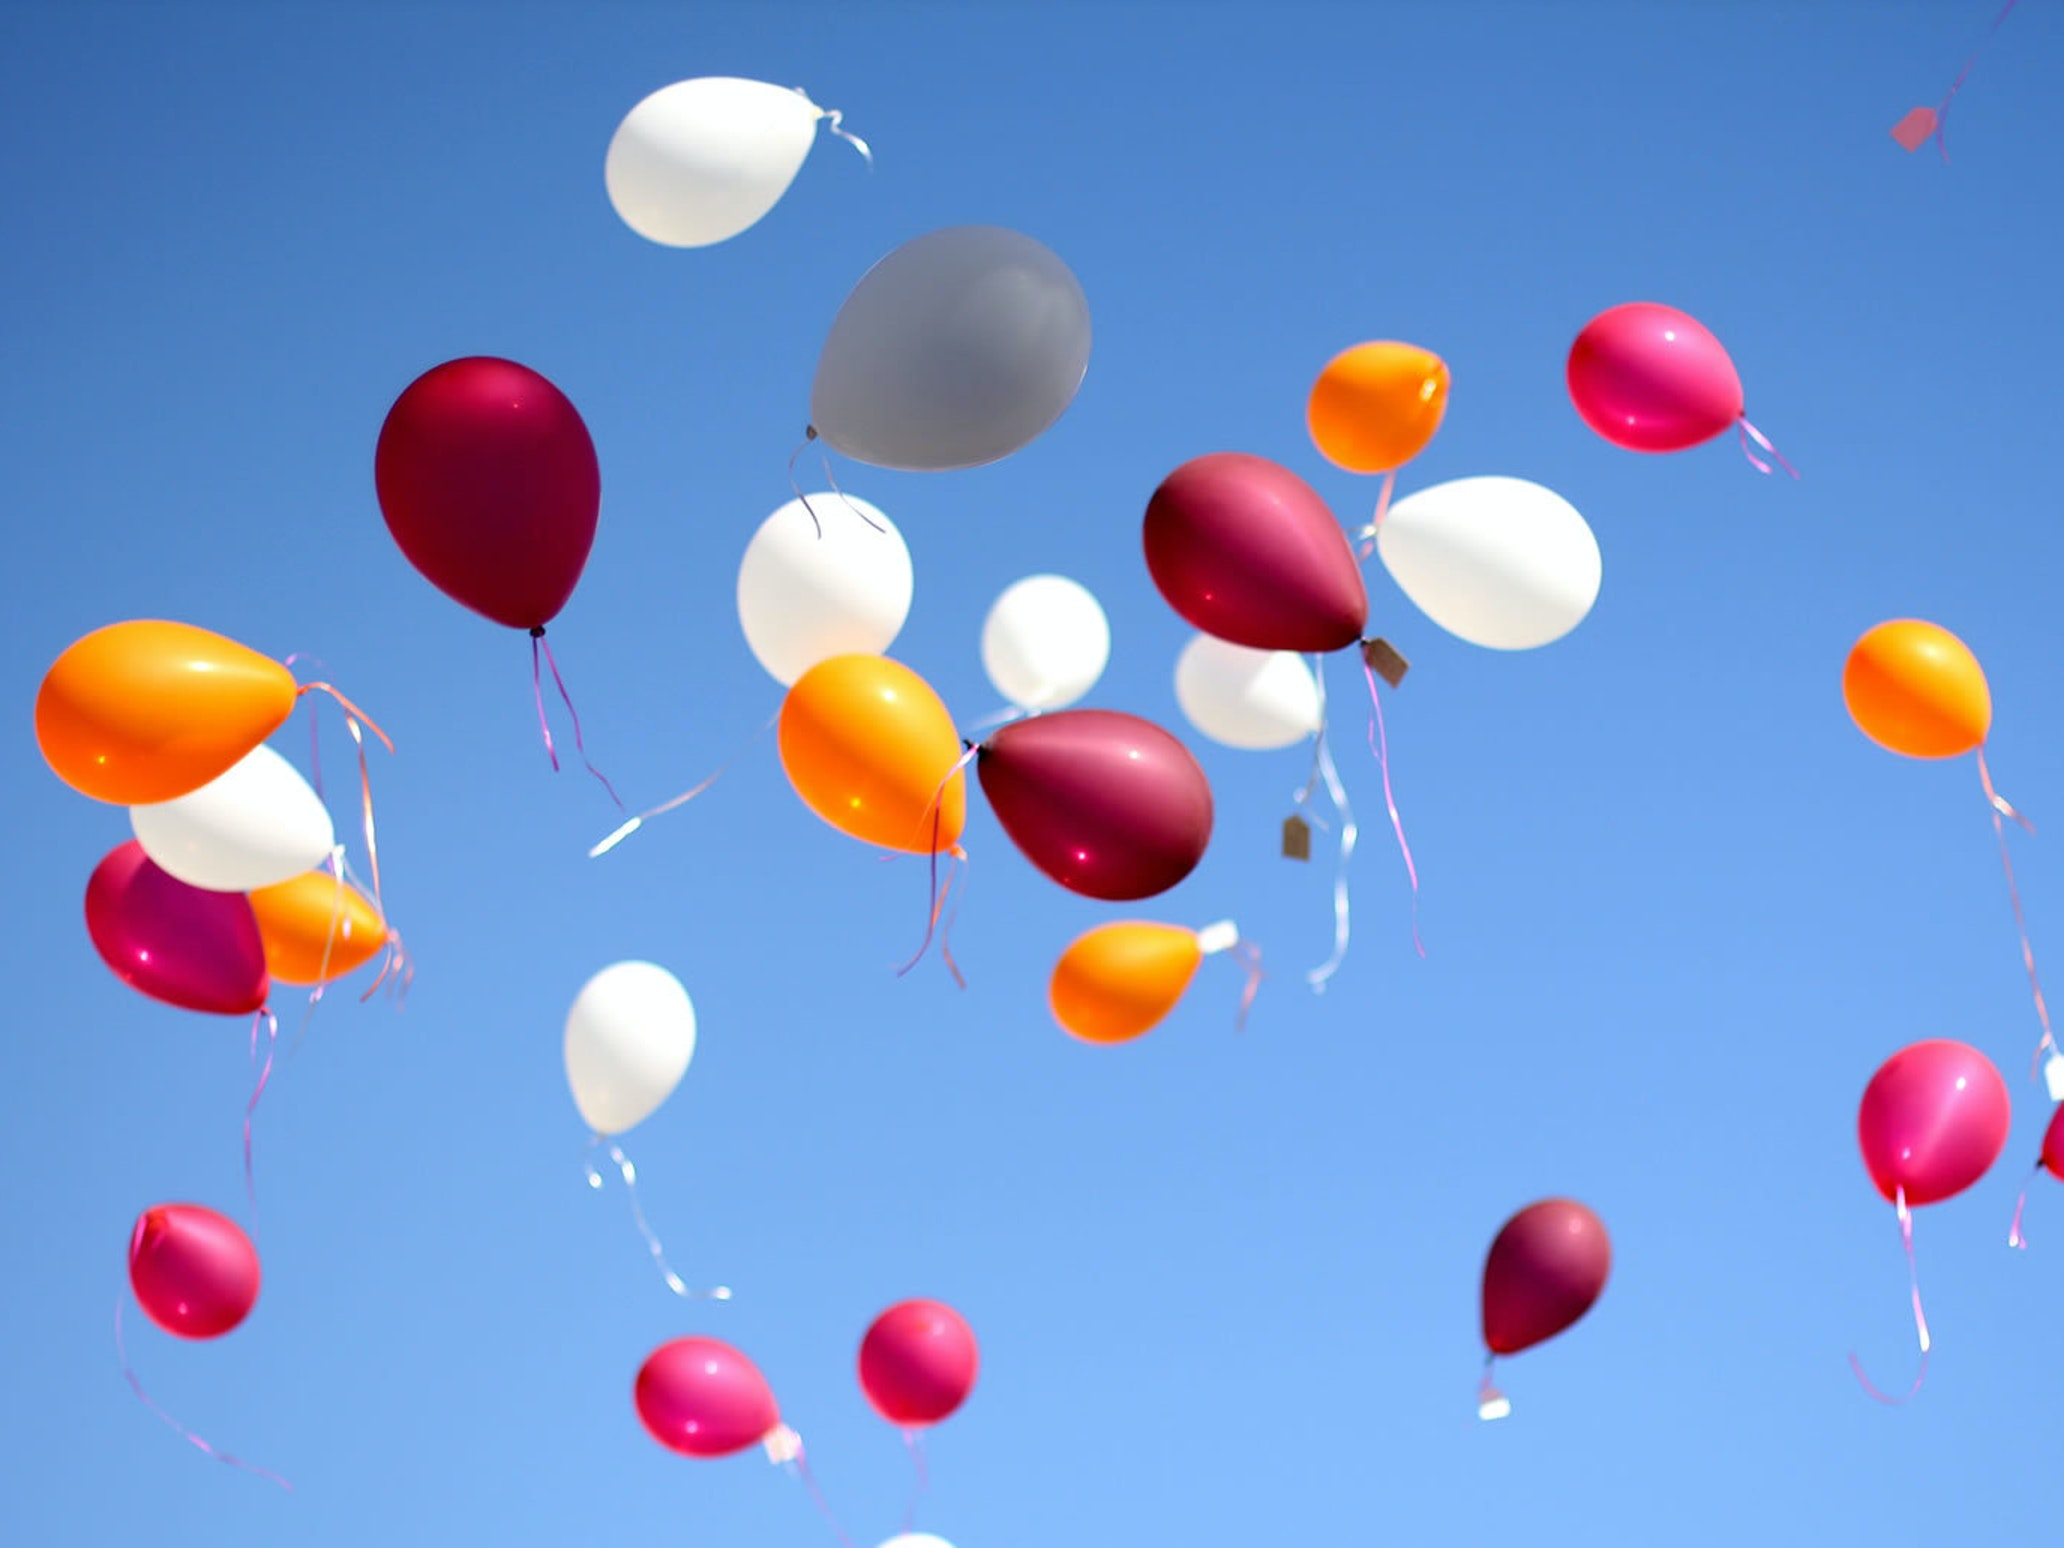 Scientists Just Narrowly Avoided a Helium Crisis